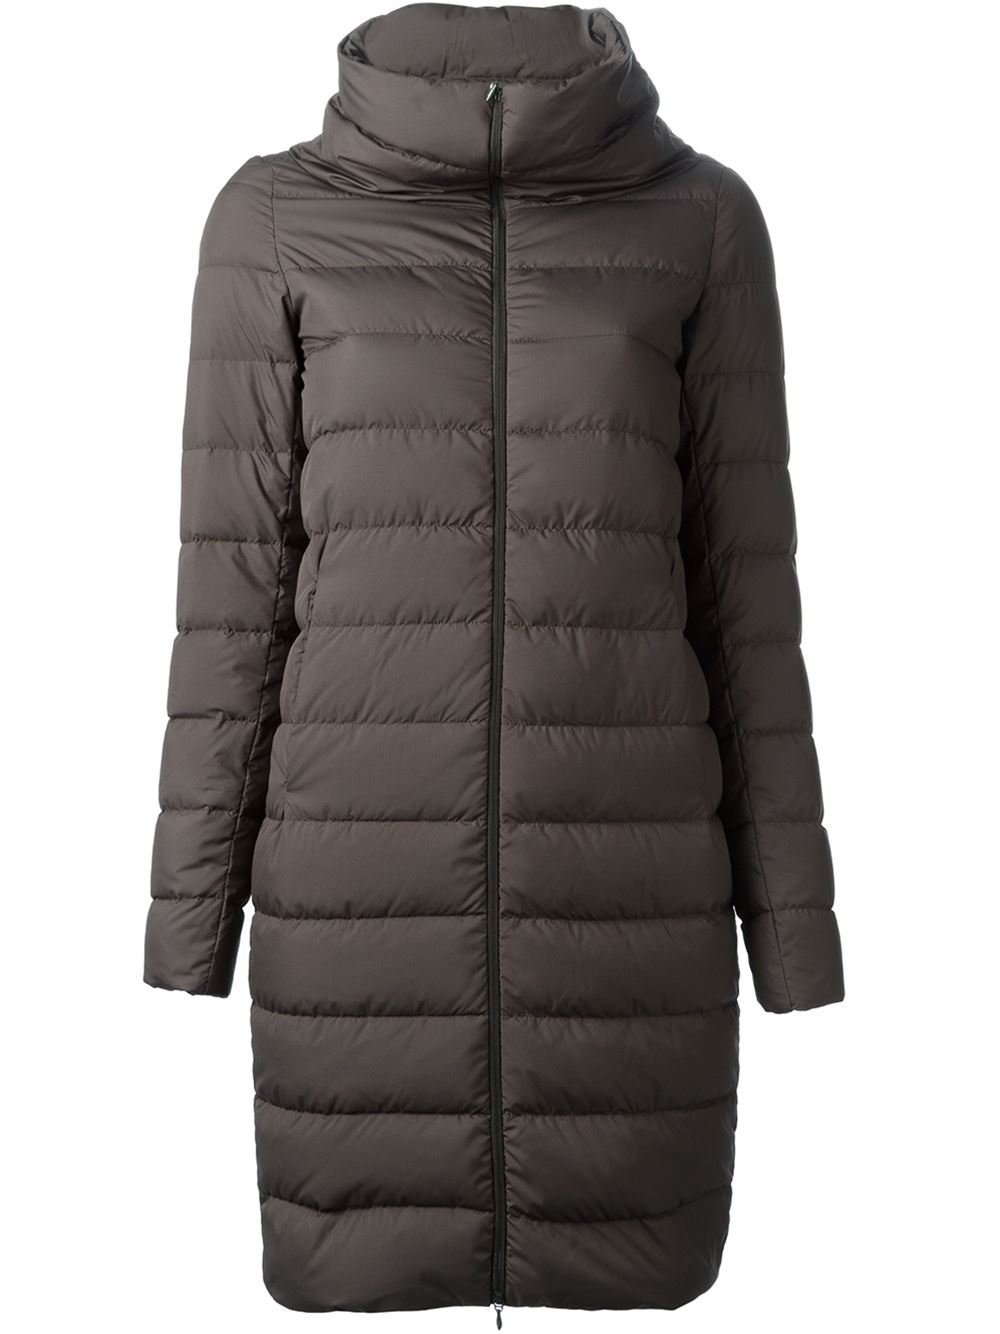 Padded coat by KAM, Suede finish, Zip and press stud fastening, Two hand pockets, Two chest pockets, Two large inside pockets, One smaller inside pocket, Adjustable cuffs with press stud fastening, KAM branded press studs, Toggles inside to adjust waist, .